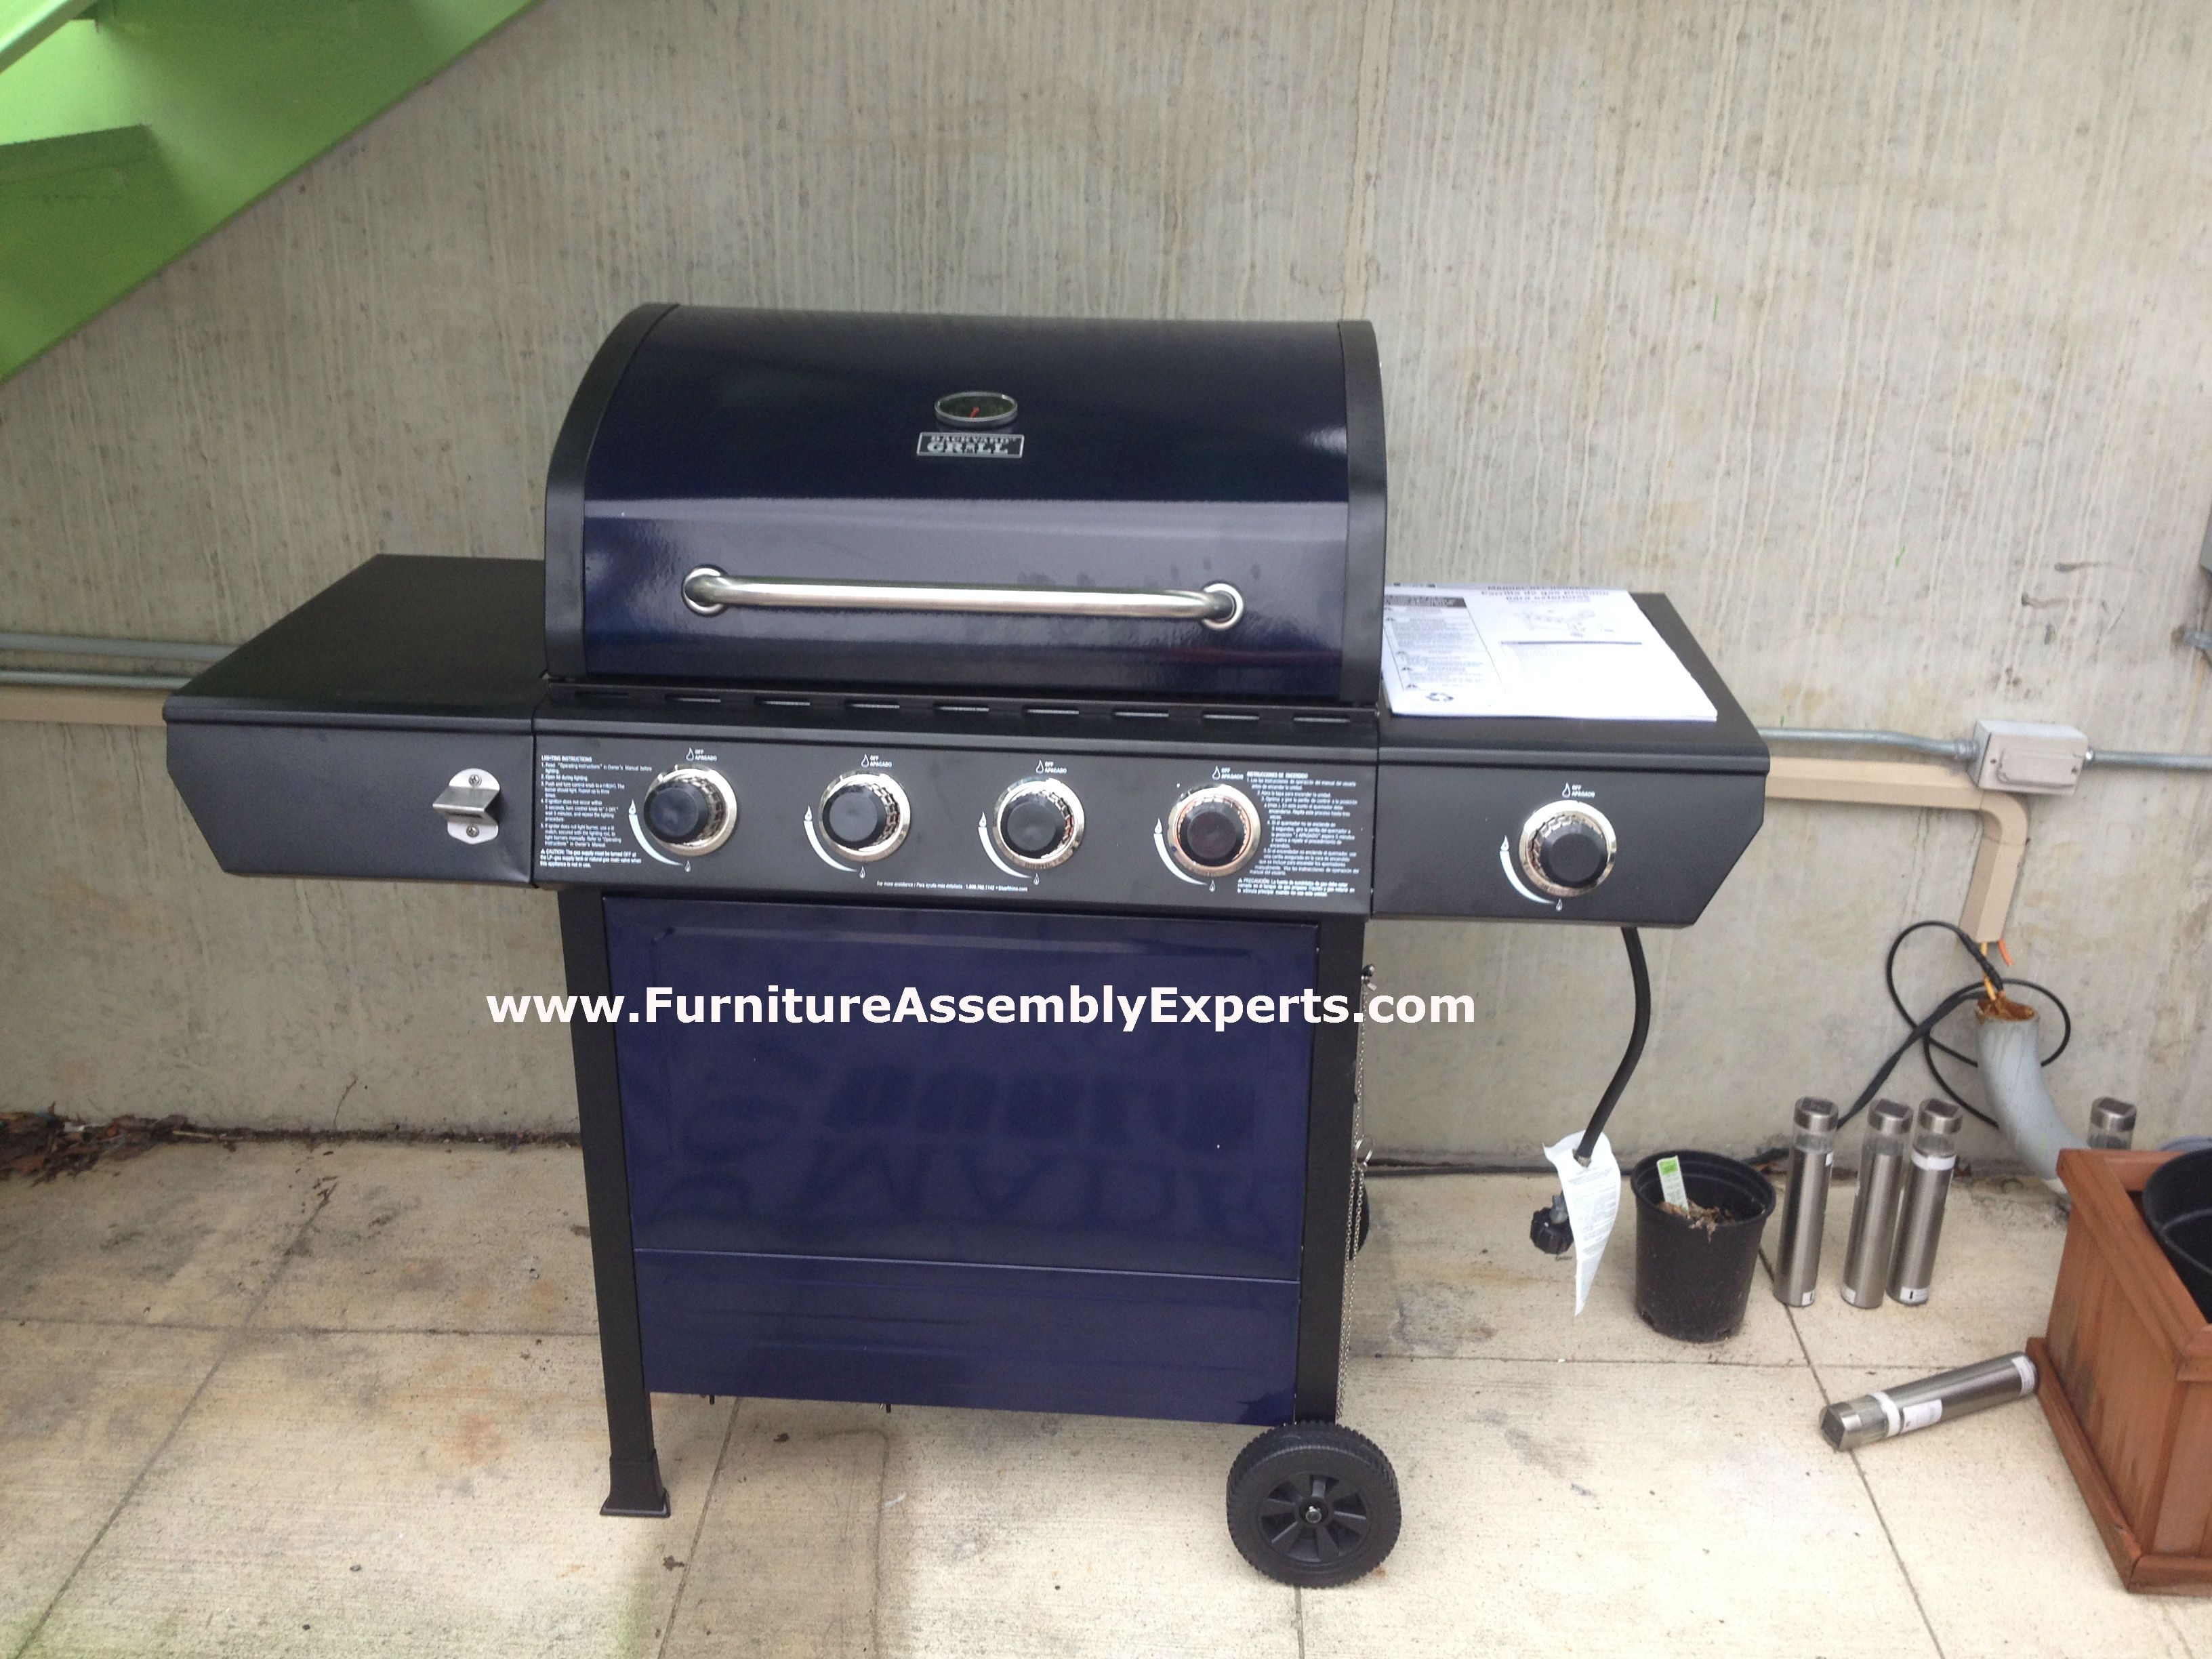 Walmart Backyard Grill 4 Burner Propane Gas Grill Assembled In Washington  DC For A Personal